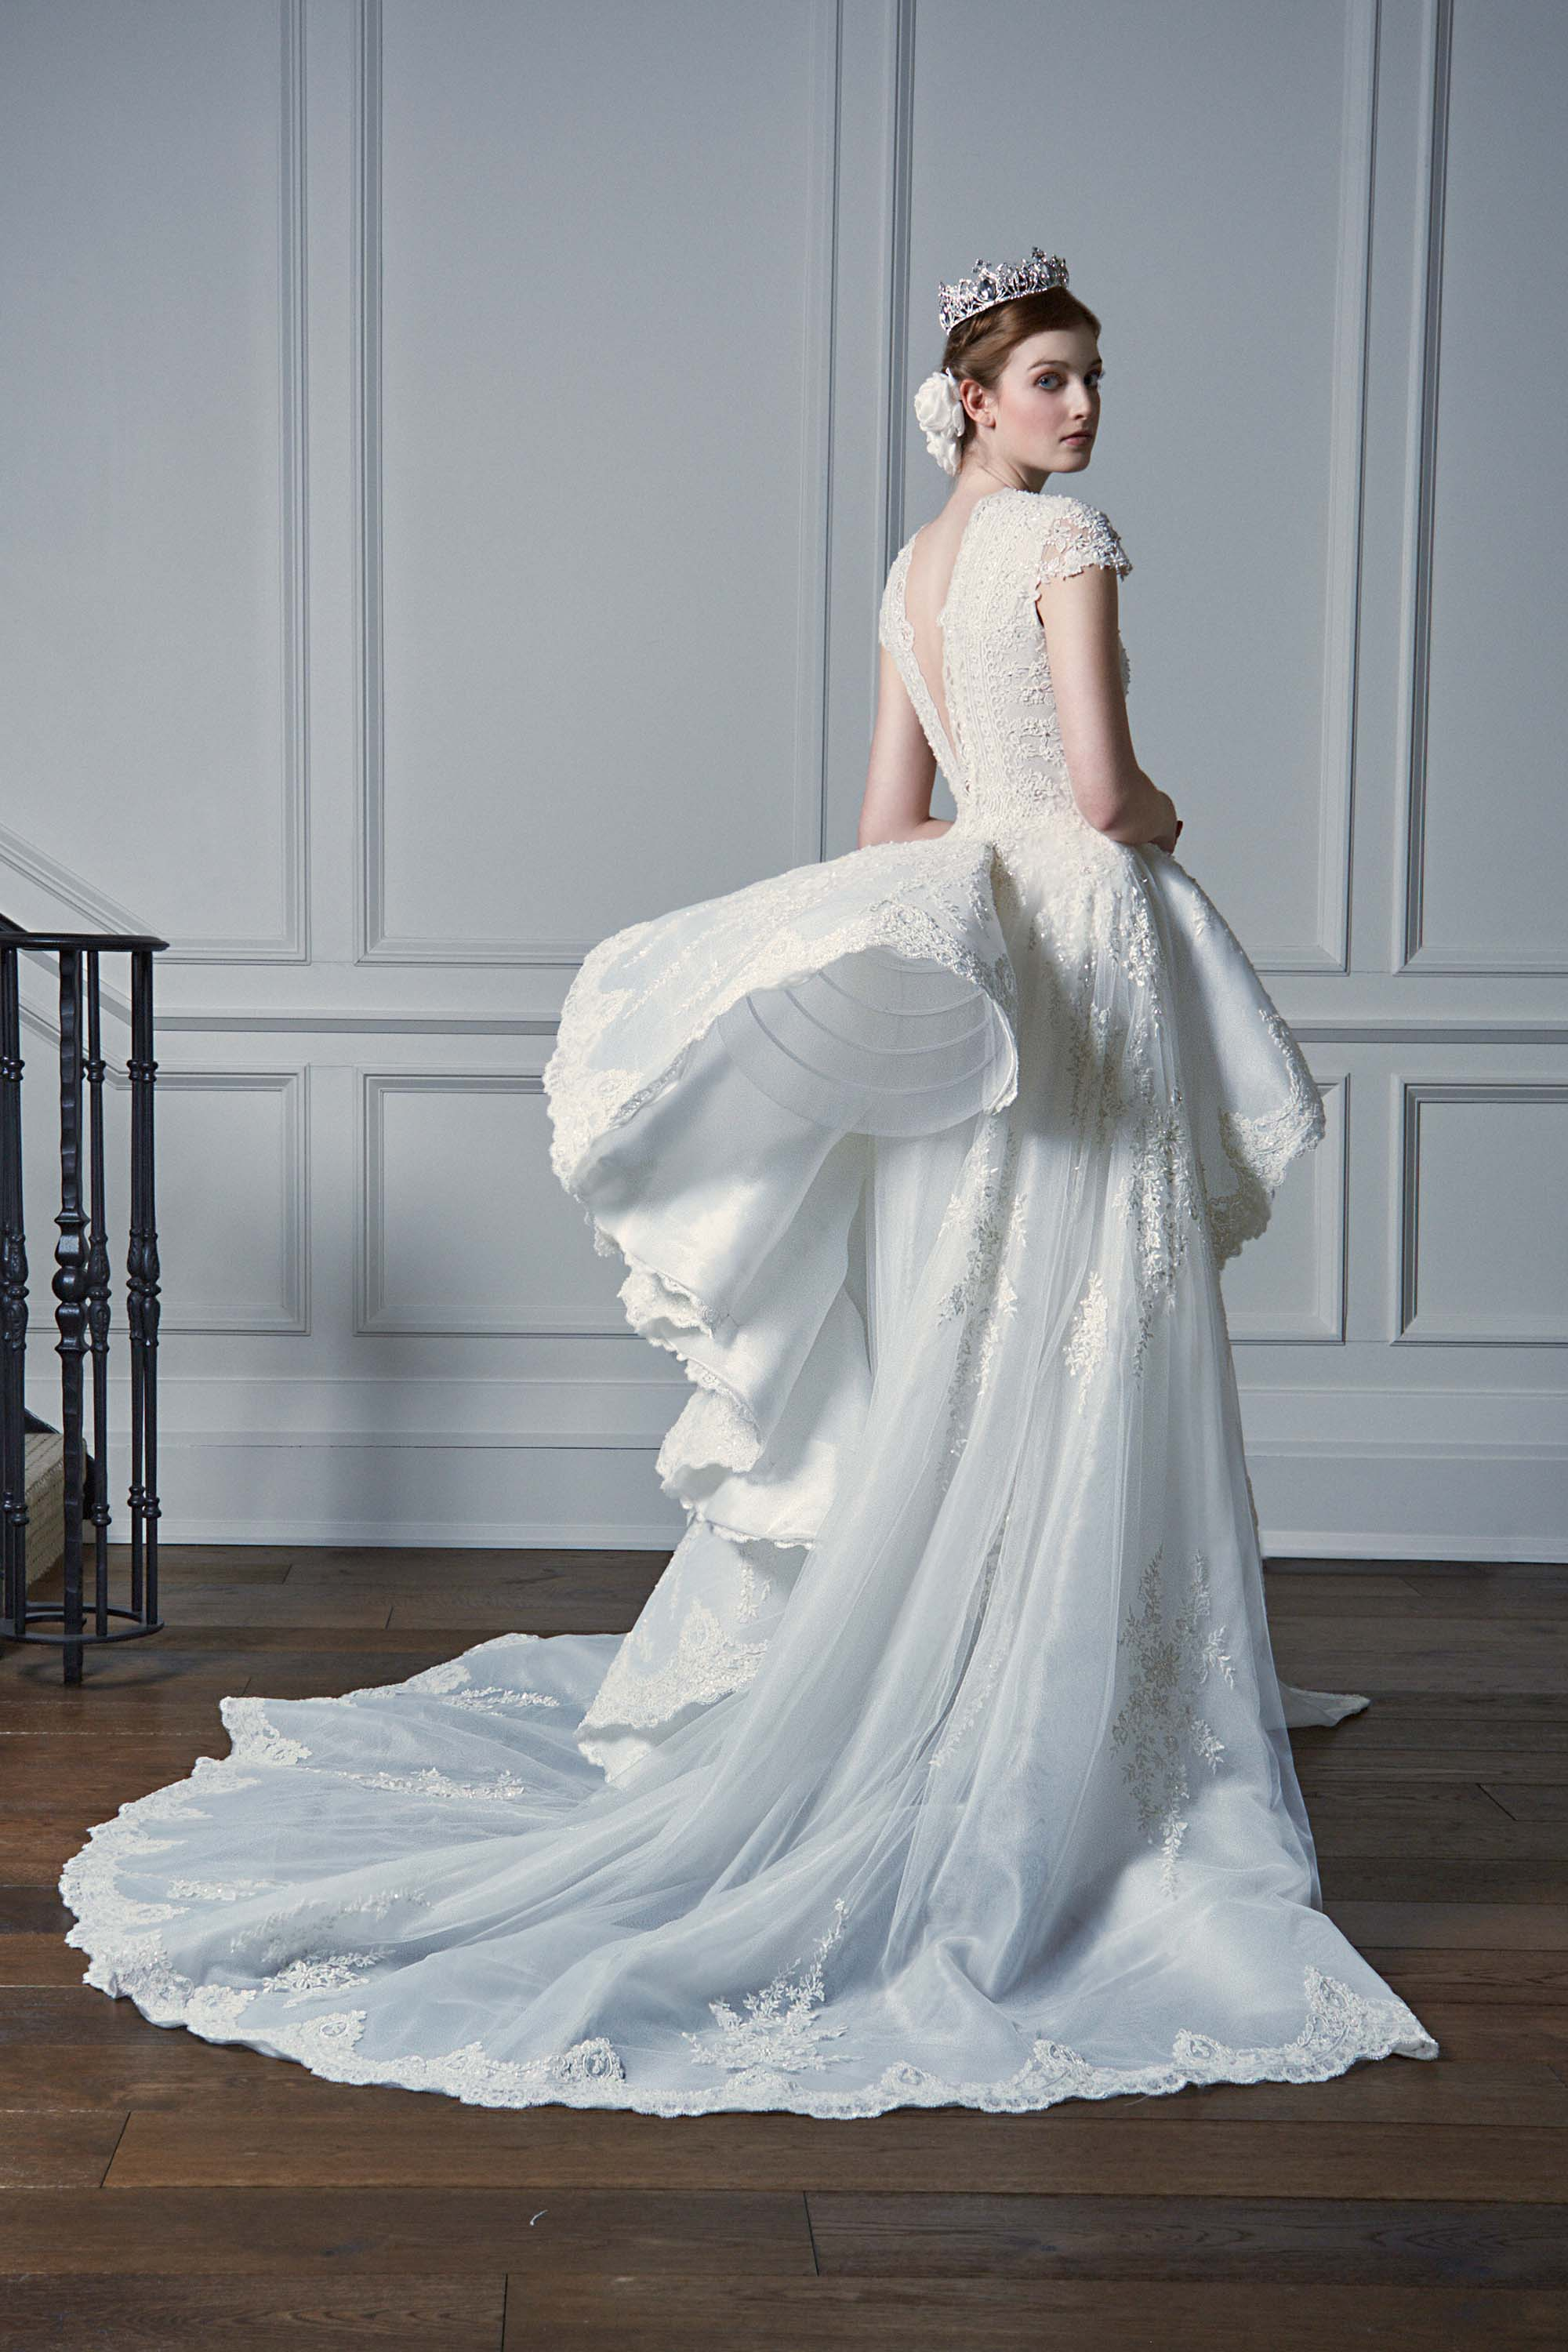 Bridal Gowns & Wedding Dresses Collection in Toronto - Kelly NG Couture